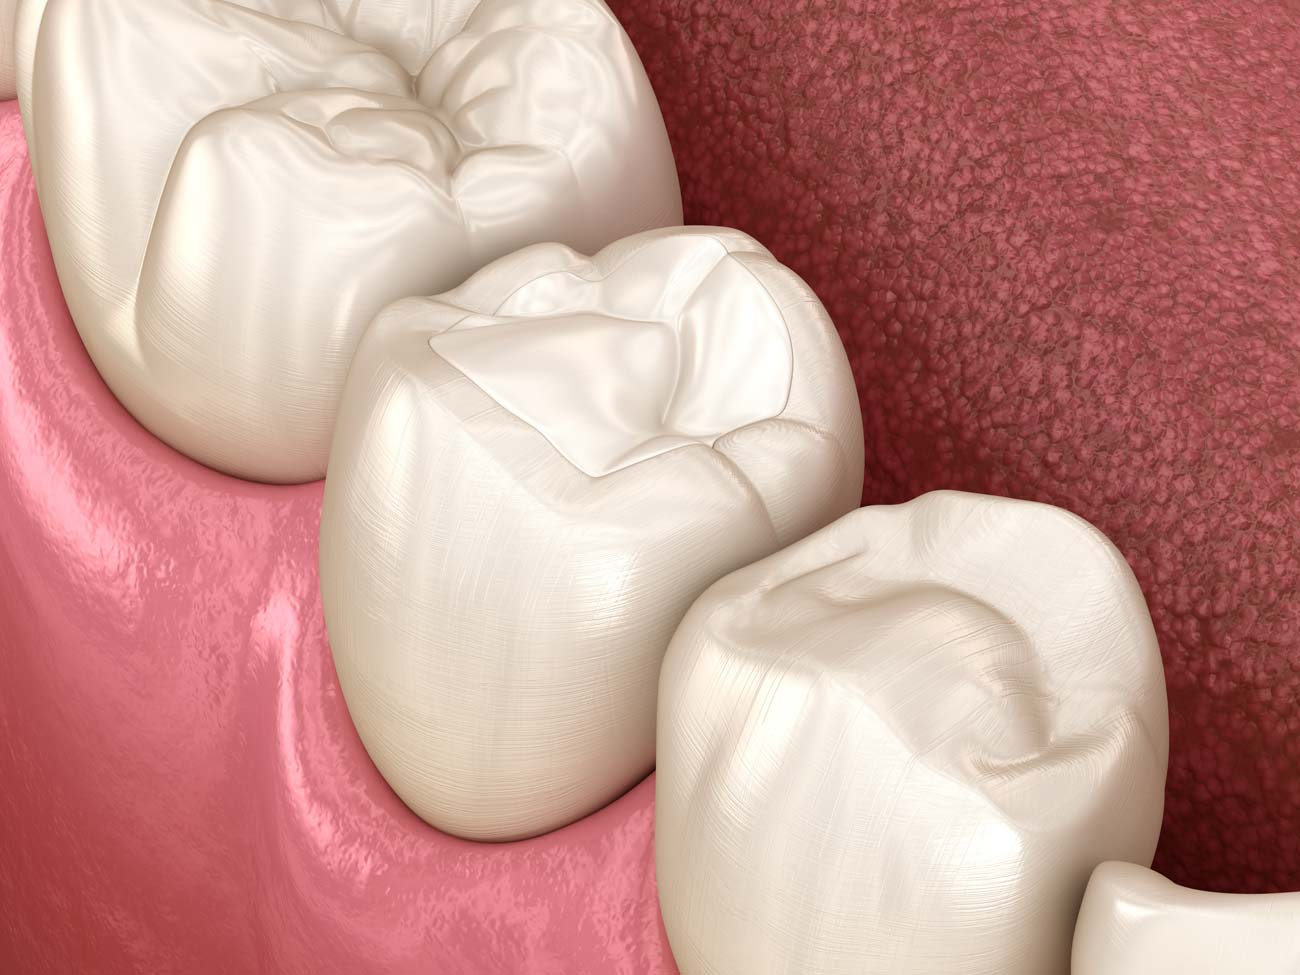 Composite Resin (Tooth colored) Fillings